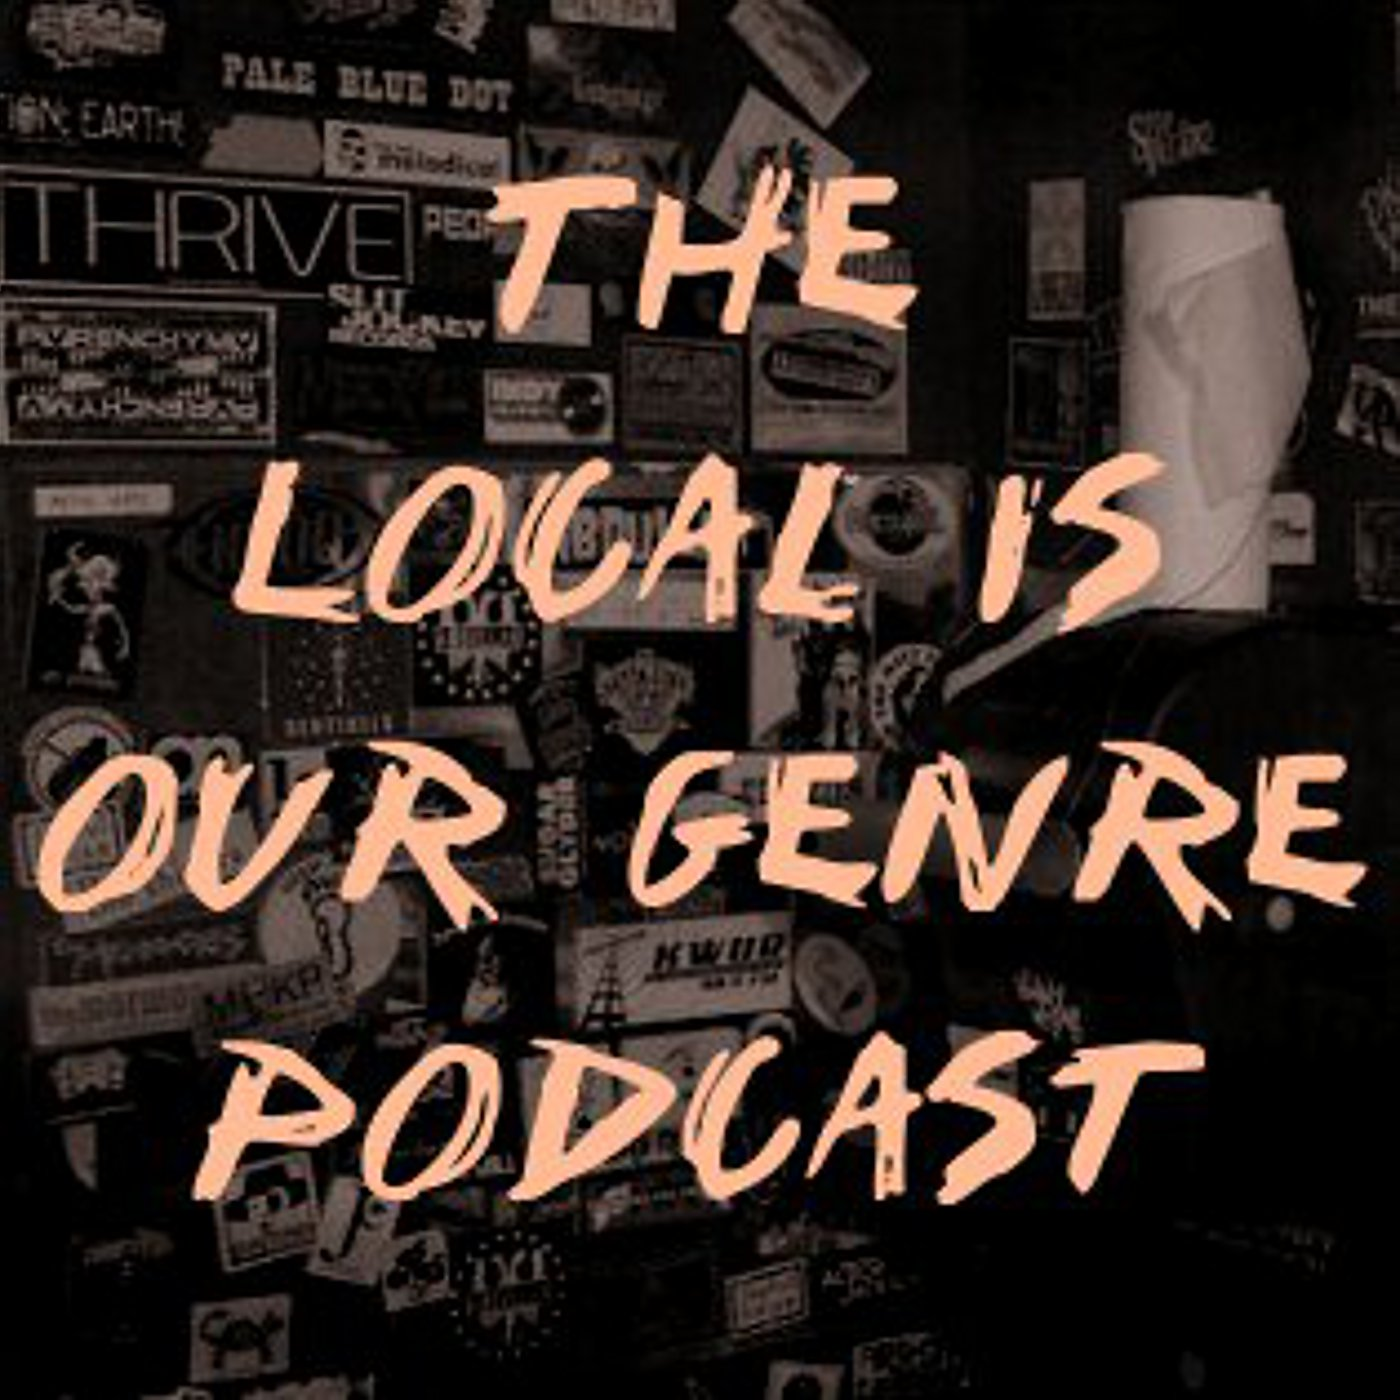 Local Is Our Genre